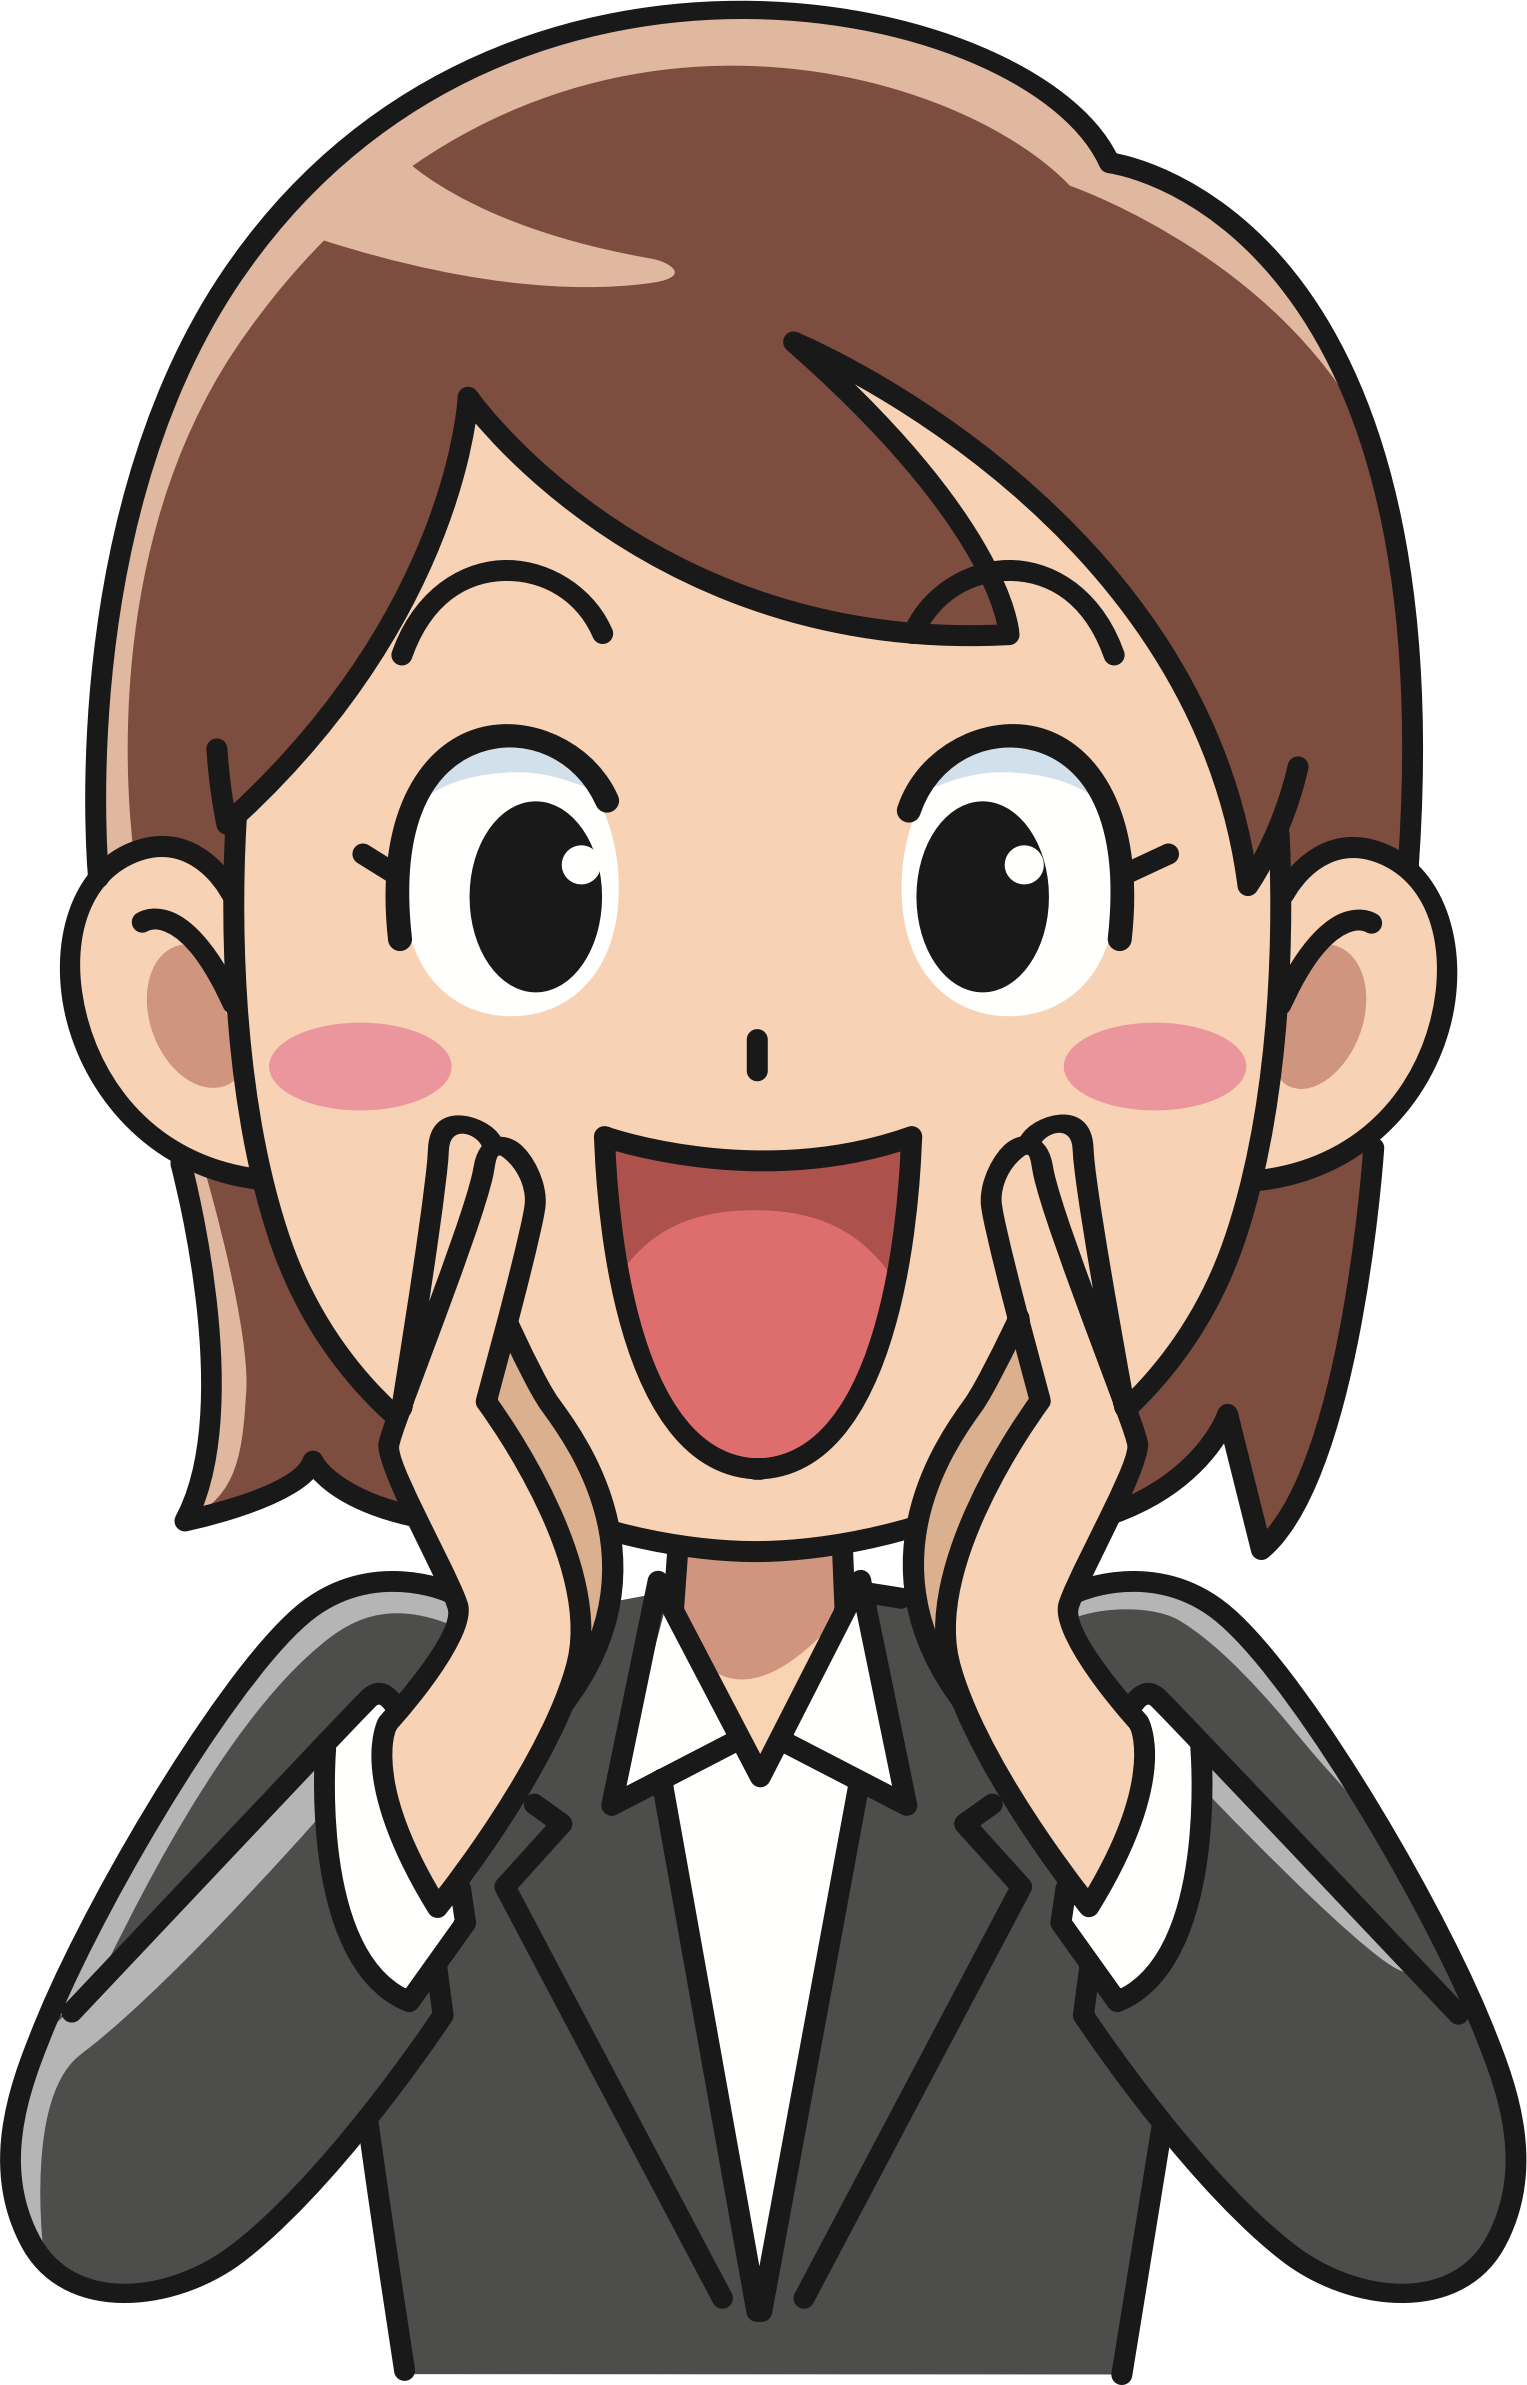 Yelling clipart heads up. Hey you big image